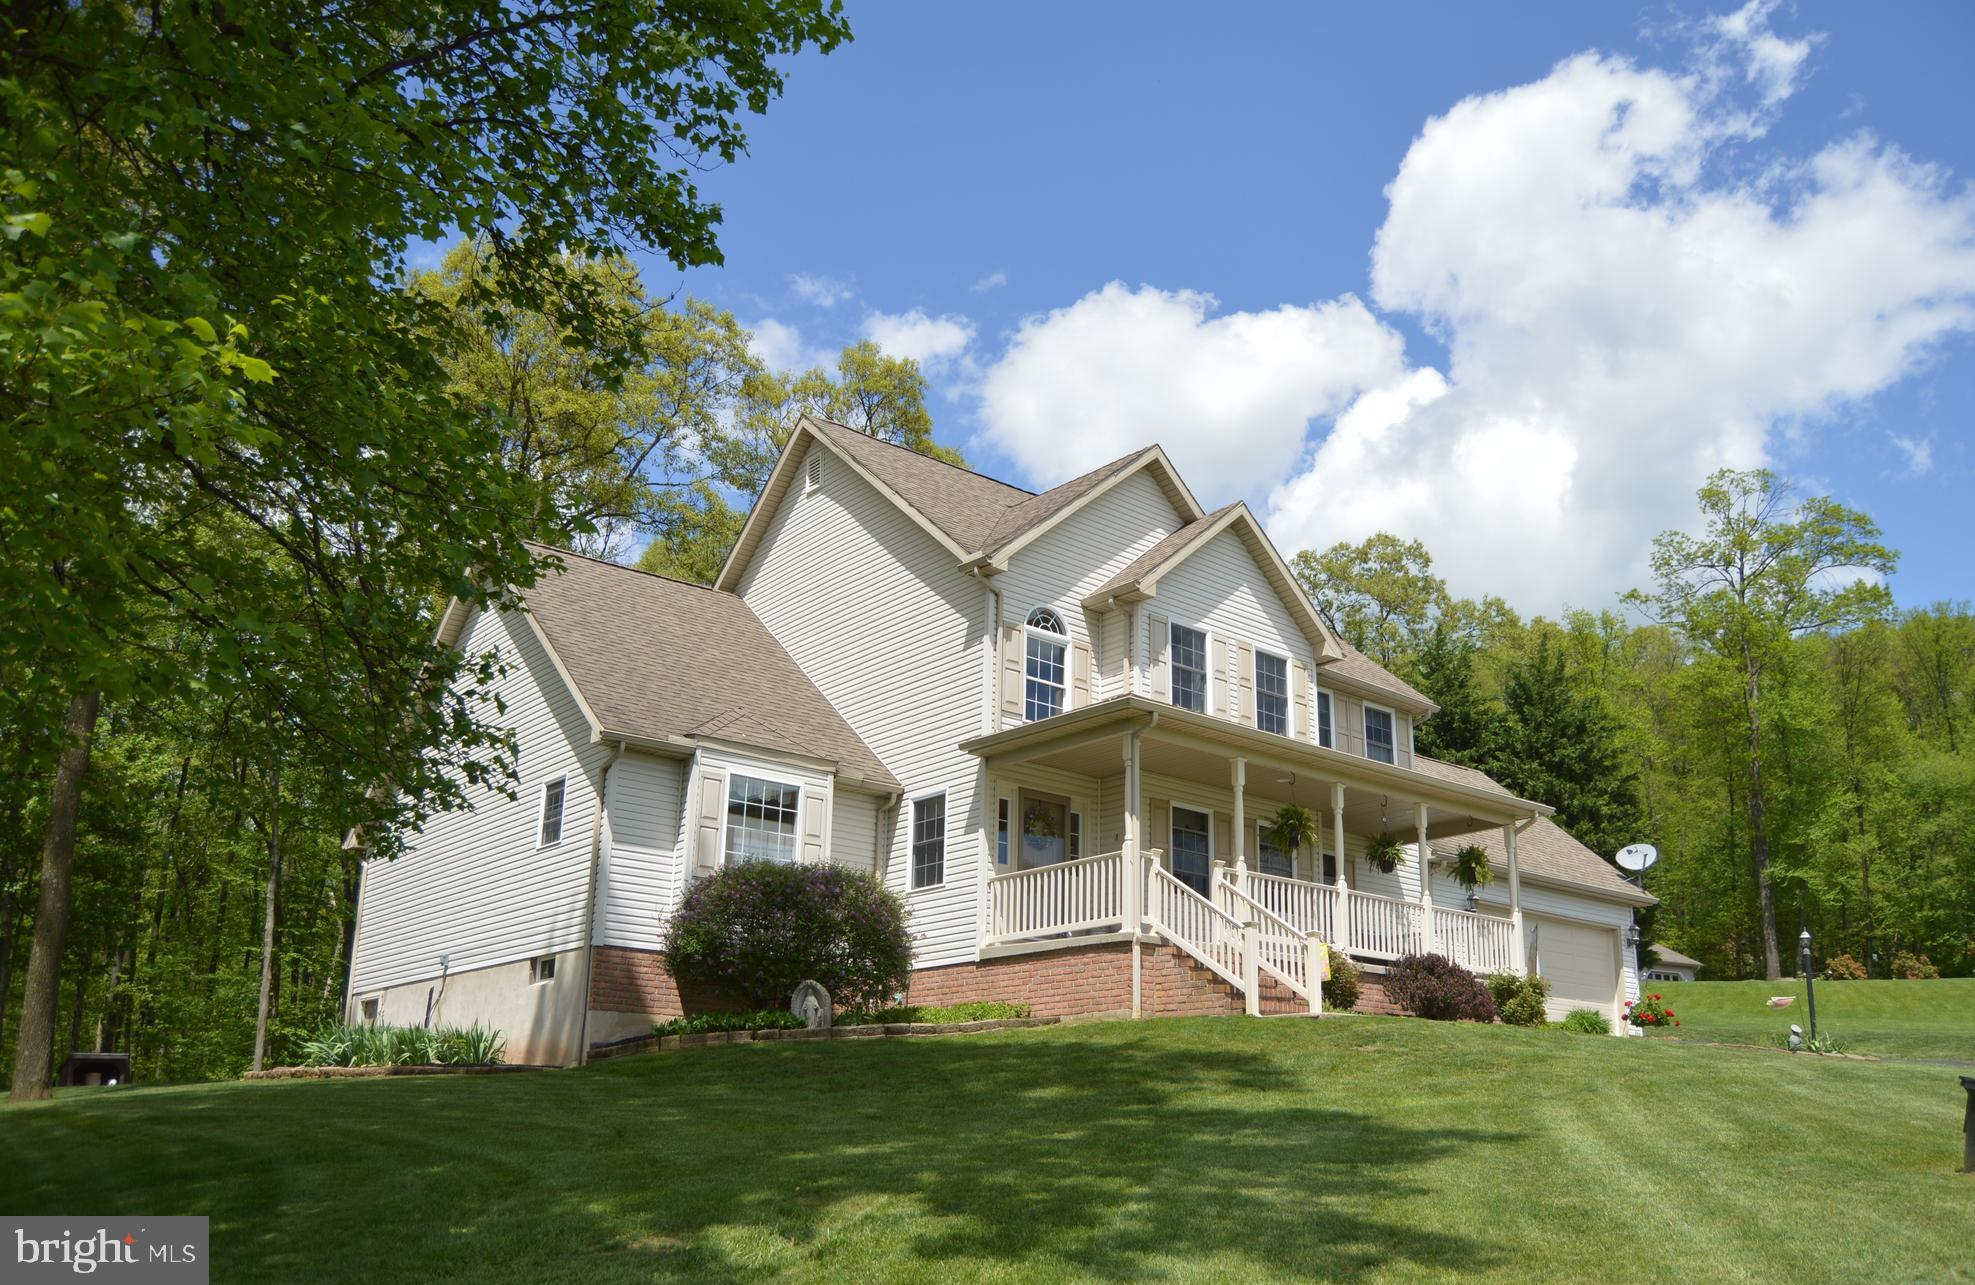 10 ORCHARD COURT, BIGLERVILLE, PA 17307